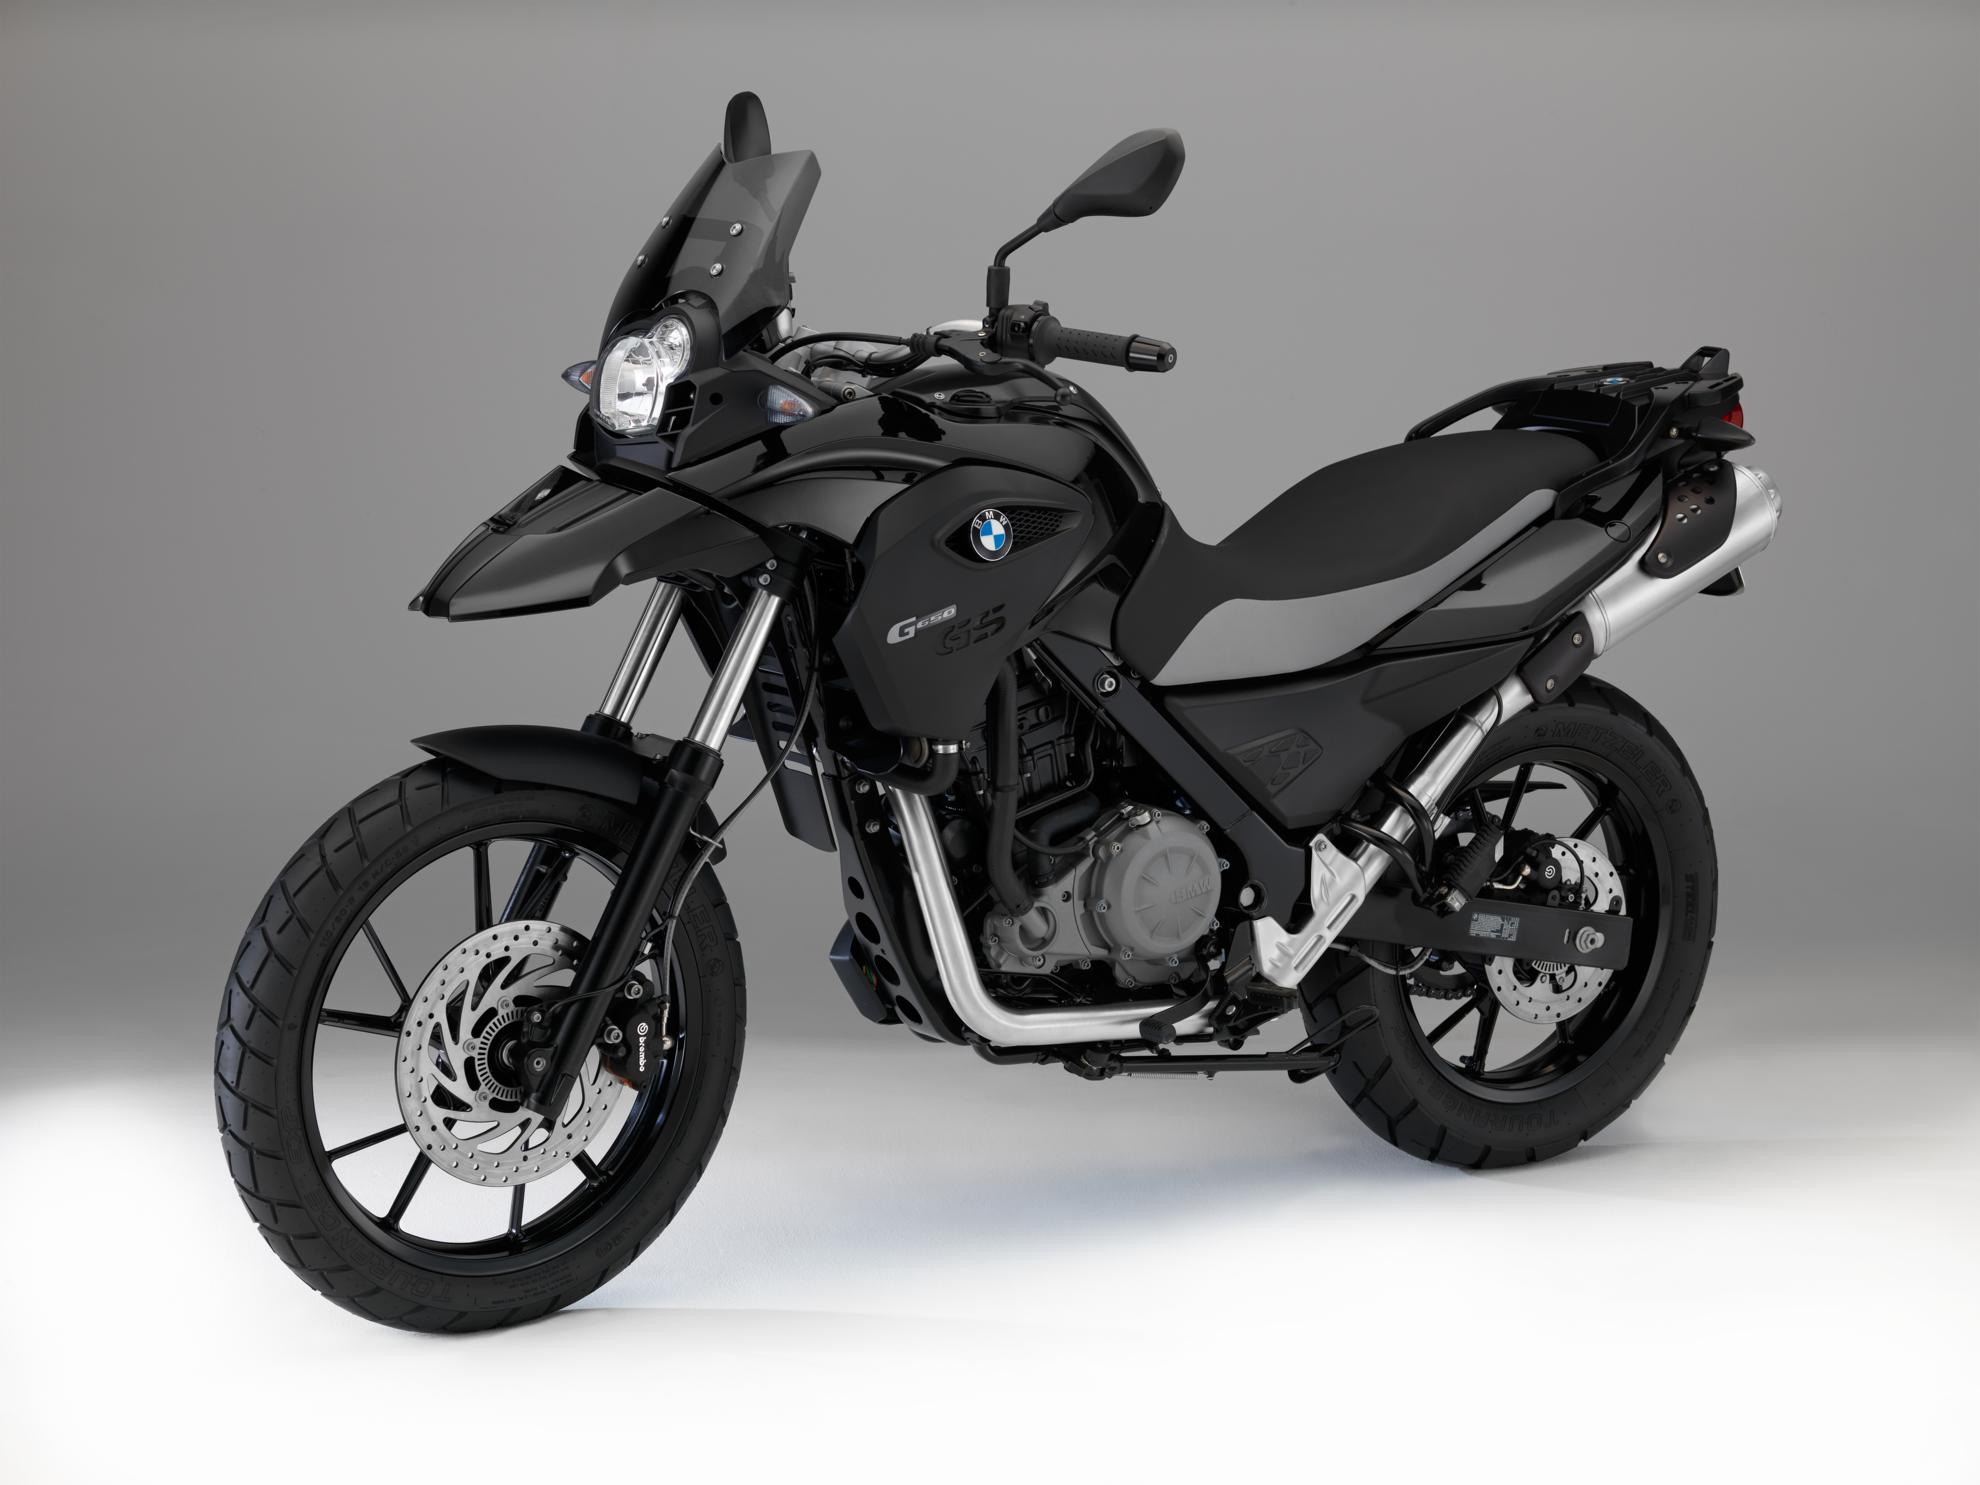 bmw motorrad motorcycles facelift measures for the model year 2014. Black Bedroom Furniture Sets. Home Design Ideas